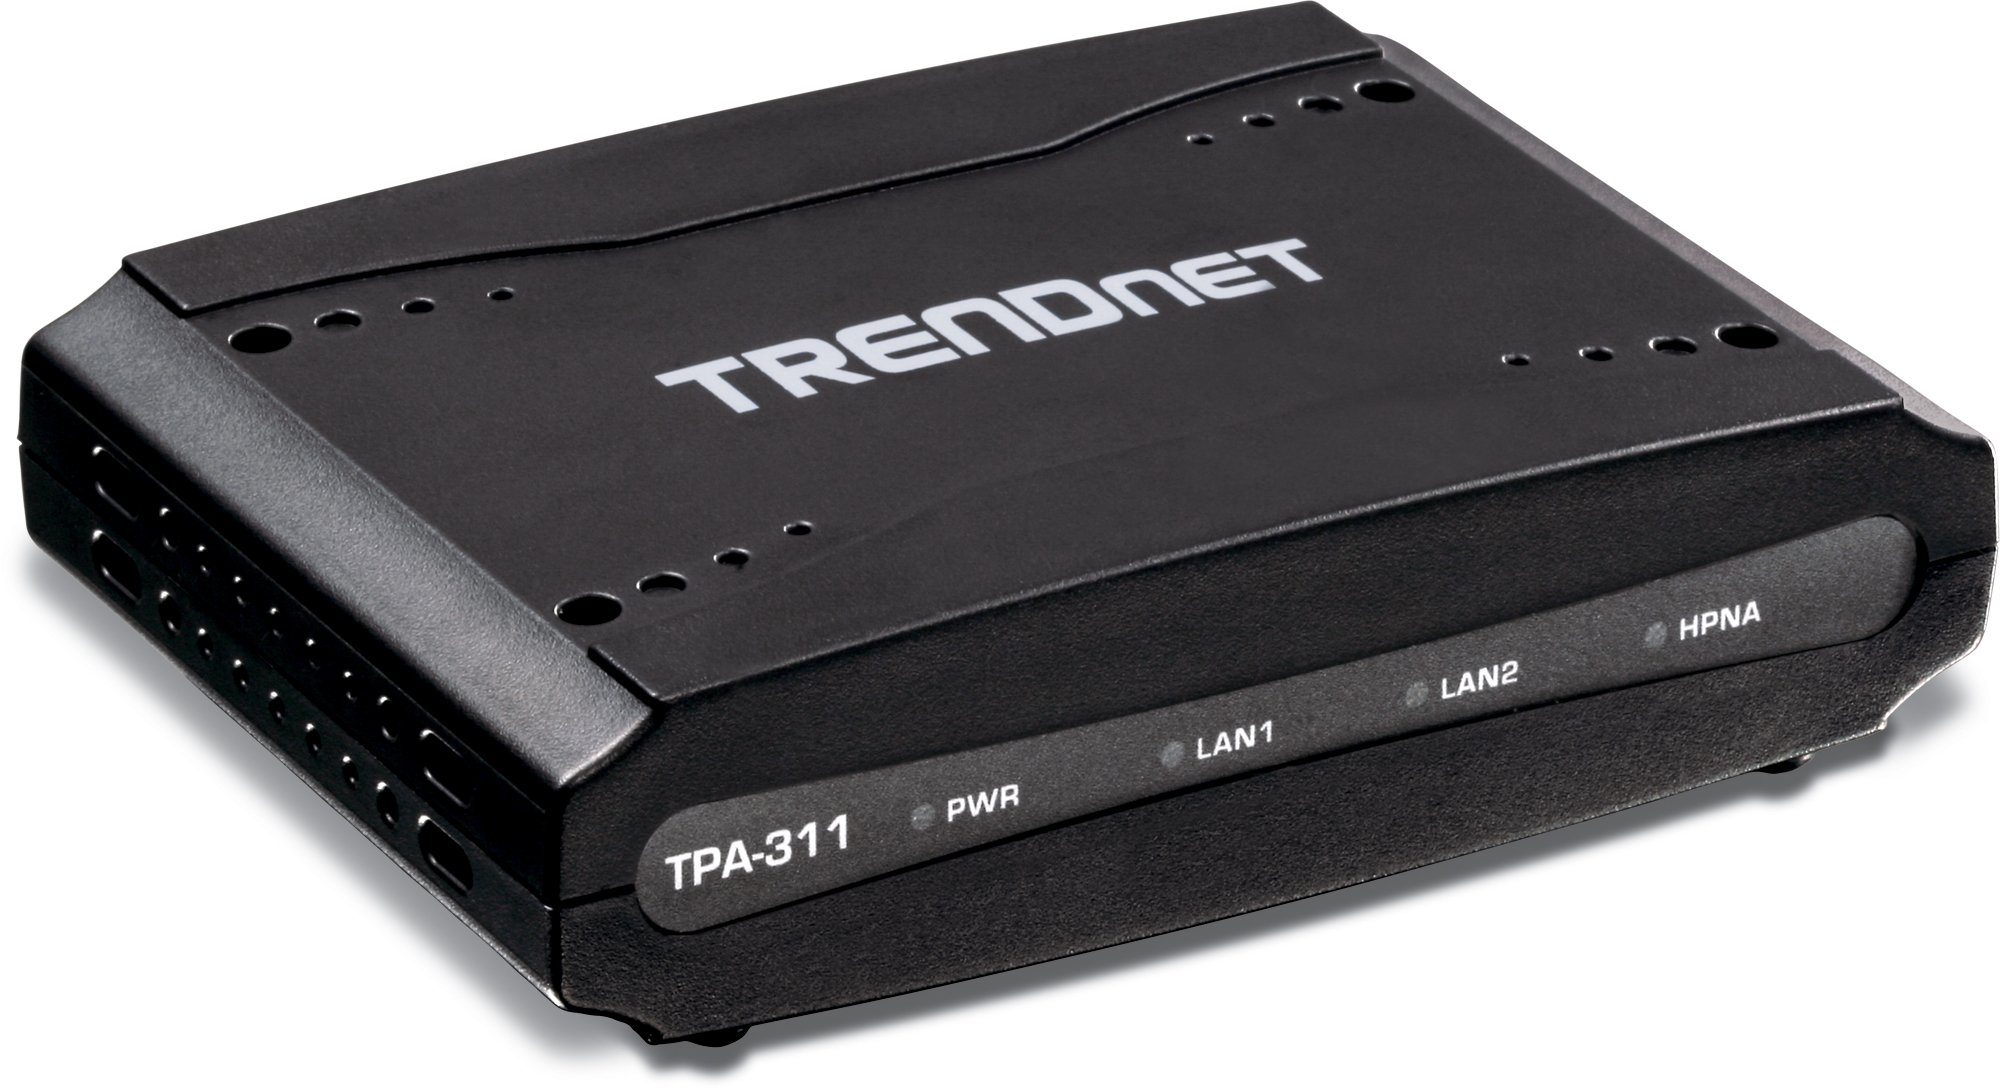 TRENDnet Mid-Band HPNA Coaxial Network Adapter, Data Transmission rates up to 256Mbps over Distances up to 1600M (5,200 Ft.), TPA-311 by TRENDnet